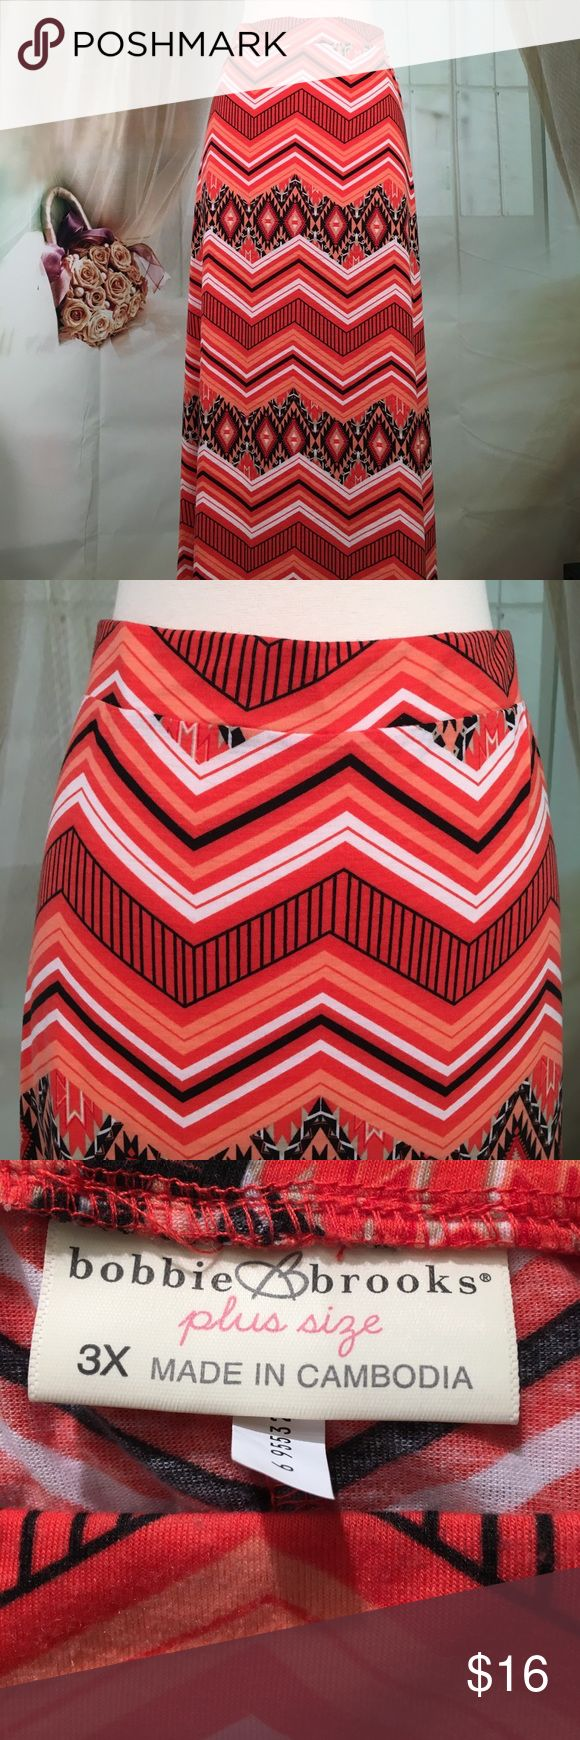 Bobbie Brooks Aztec Maxi Skirt NWOT Love the skirt. Orange and black Aztec pattern maxiskirt. 95% polyester and 5% spandex. Fabric is very soft. Elastic waist.  Wide band.  Slit in the back.  New without tags.  Size 3X.  Waist measured flat 20 inches and length 42 inches.  SK131 LOC-1 Bobbie Brooks Skirts Maxi